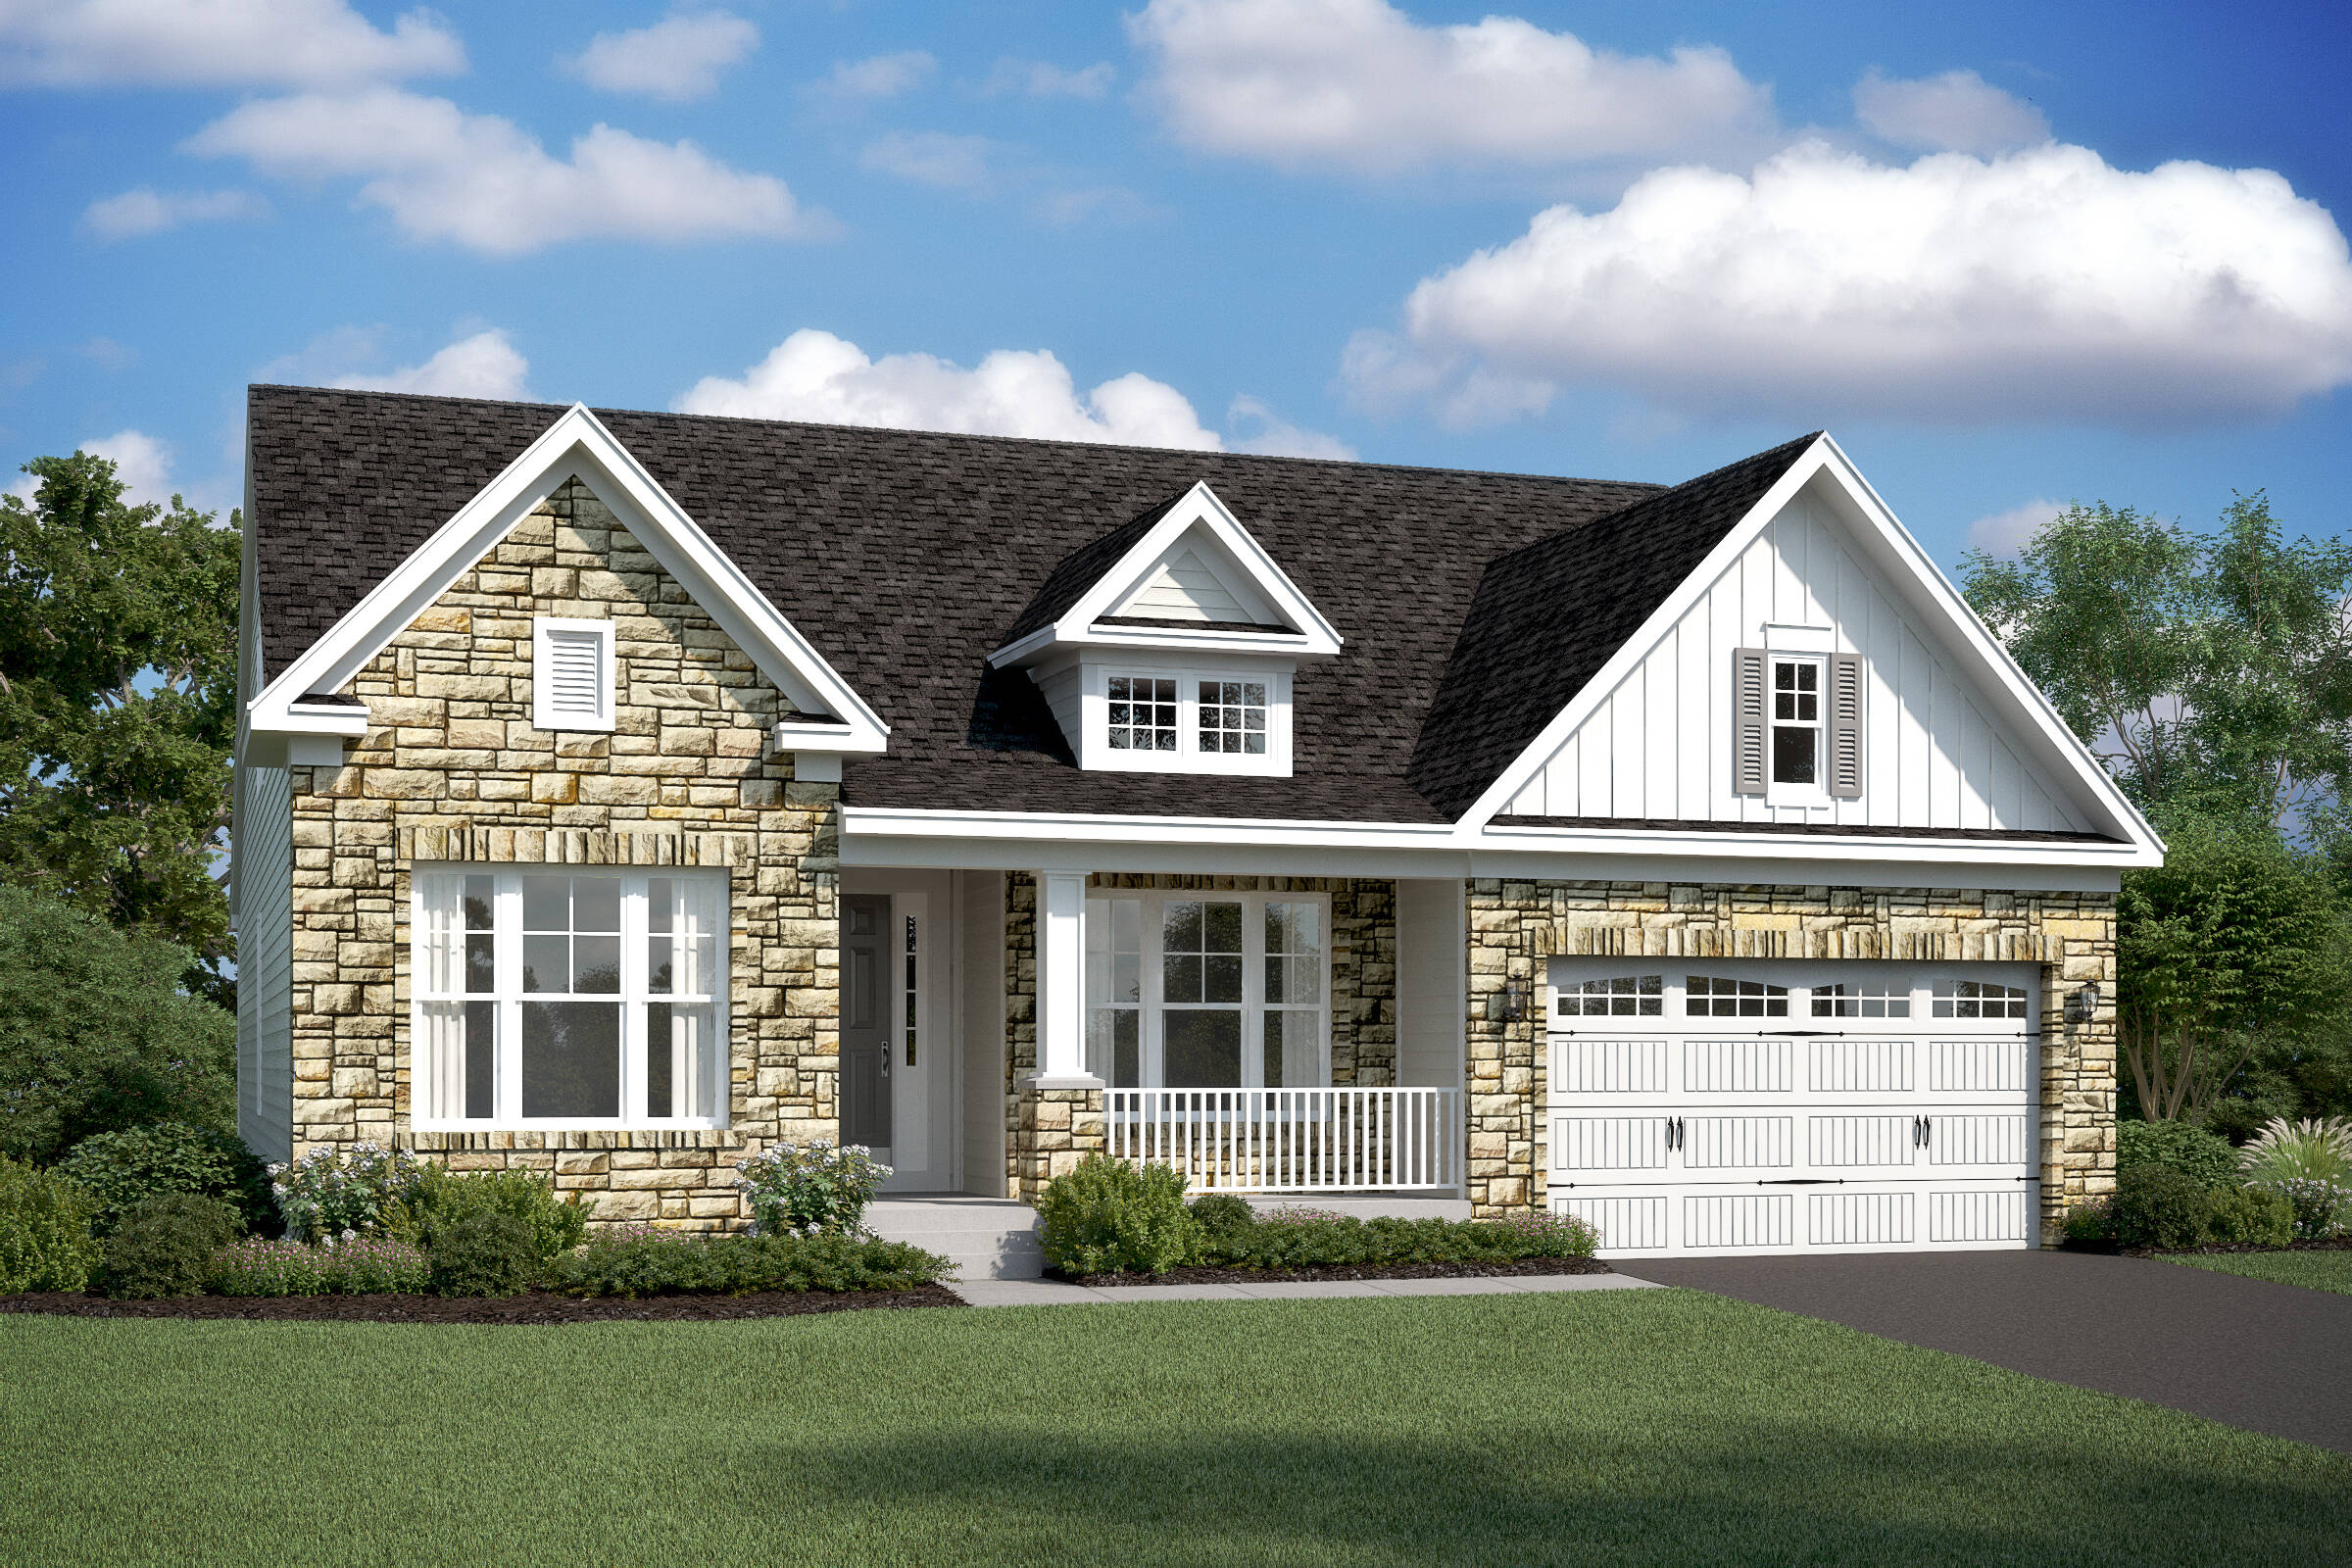 rockford jt new homes at knollac acres